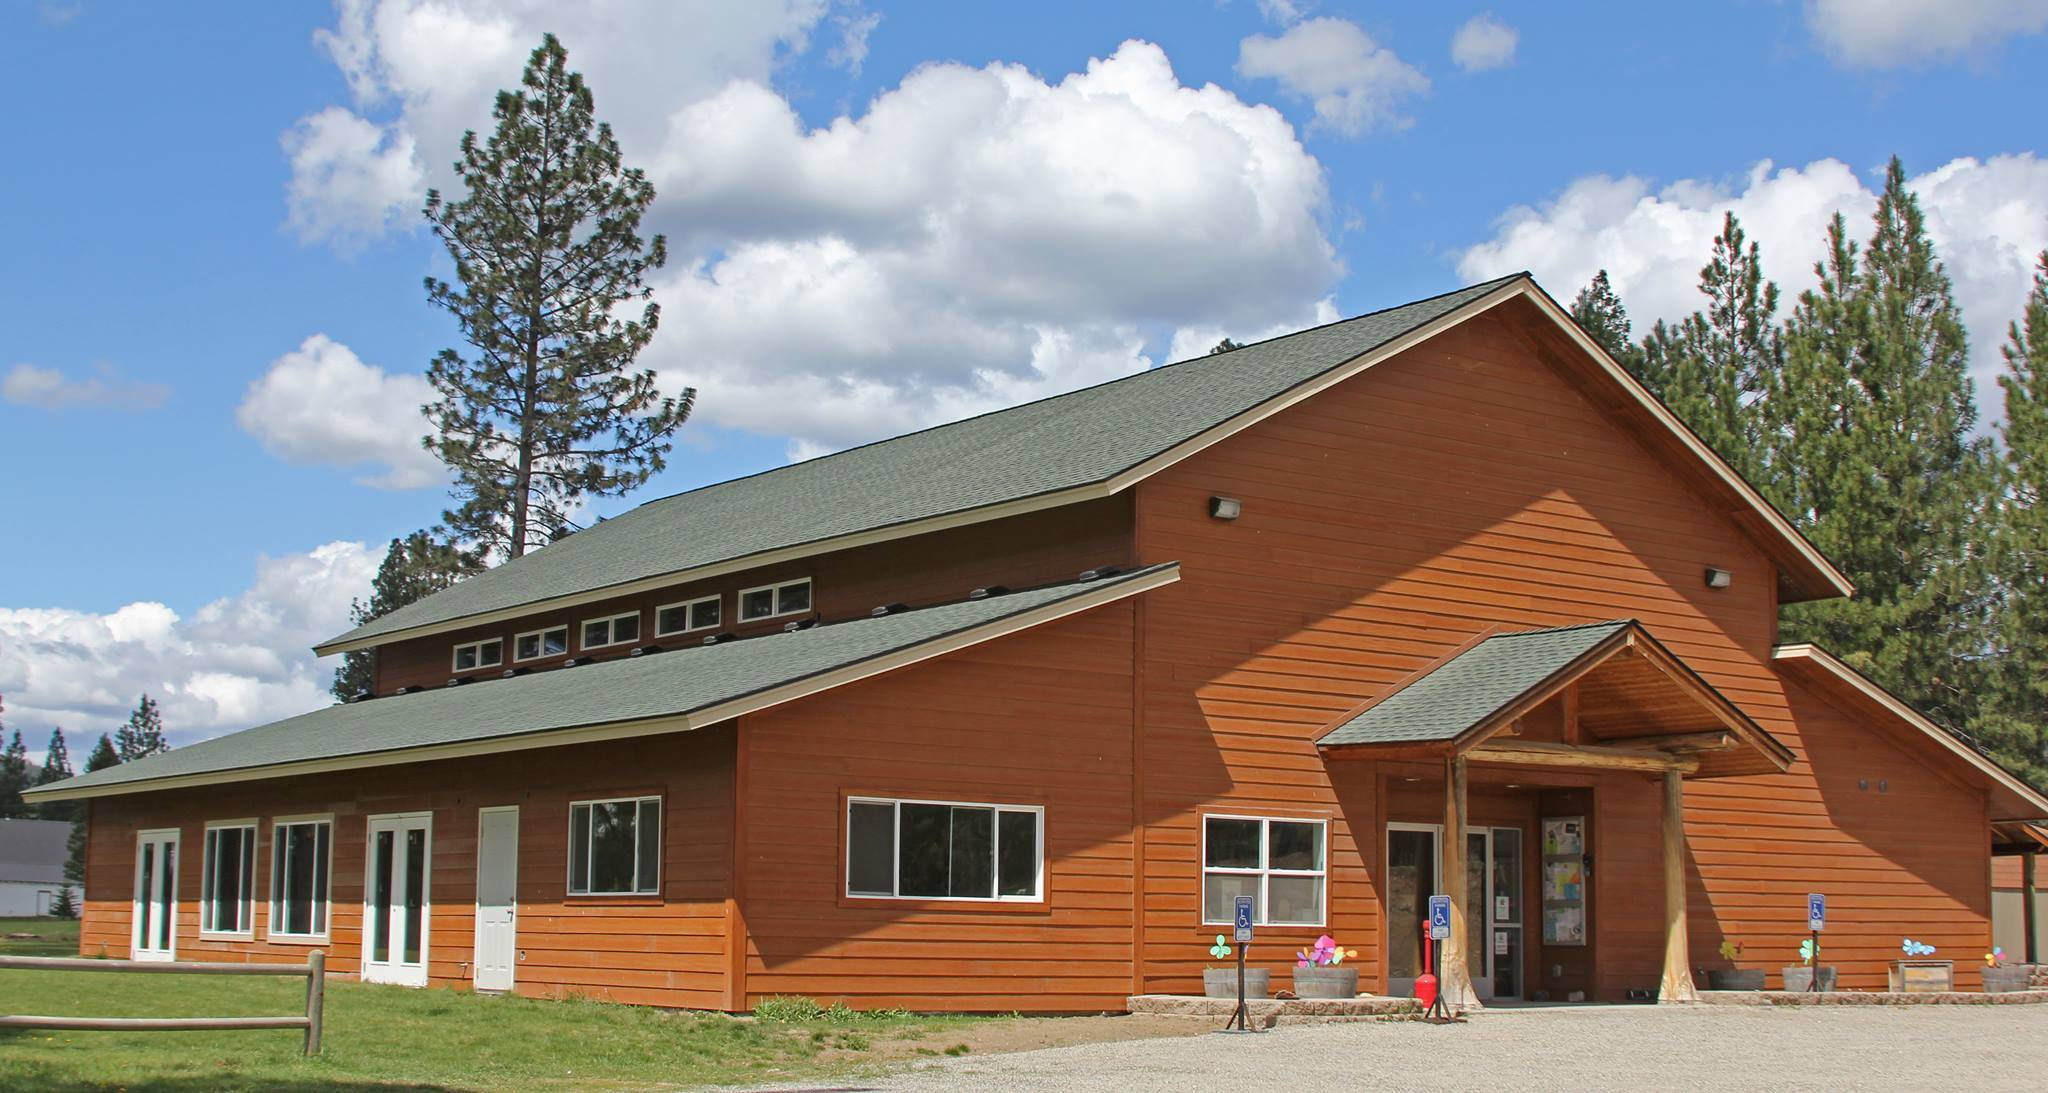 Blanchard Community Center in Idaho